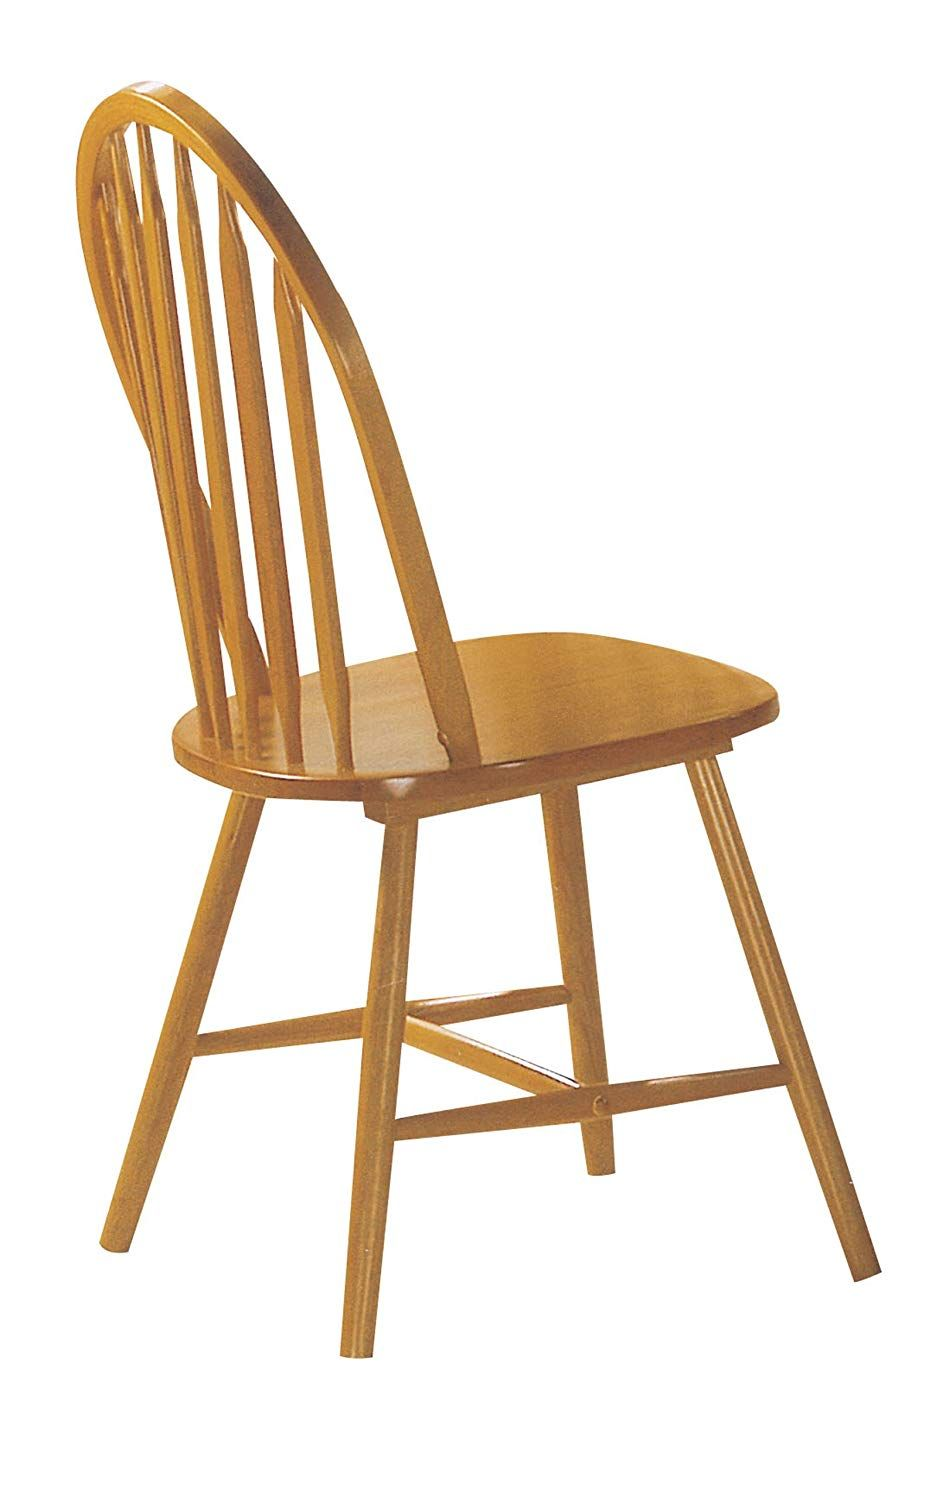 Click Image To Buy American Style Dining Chair Solid Oak Wood